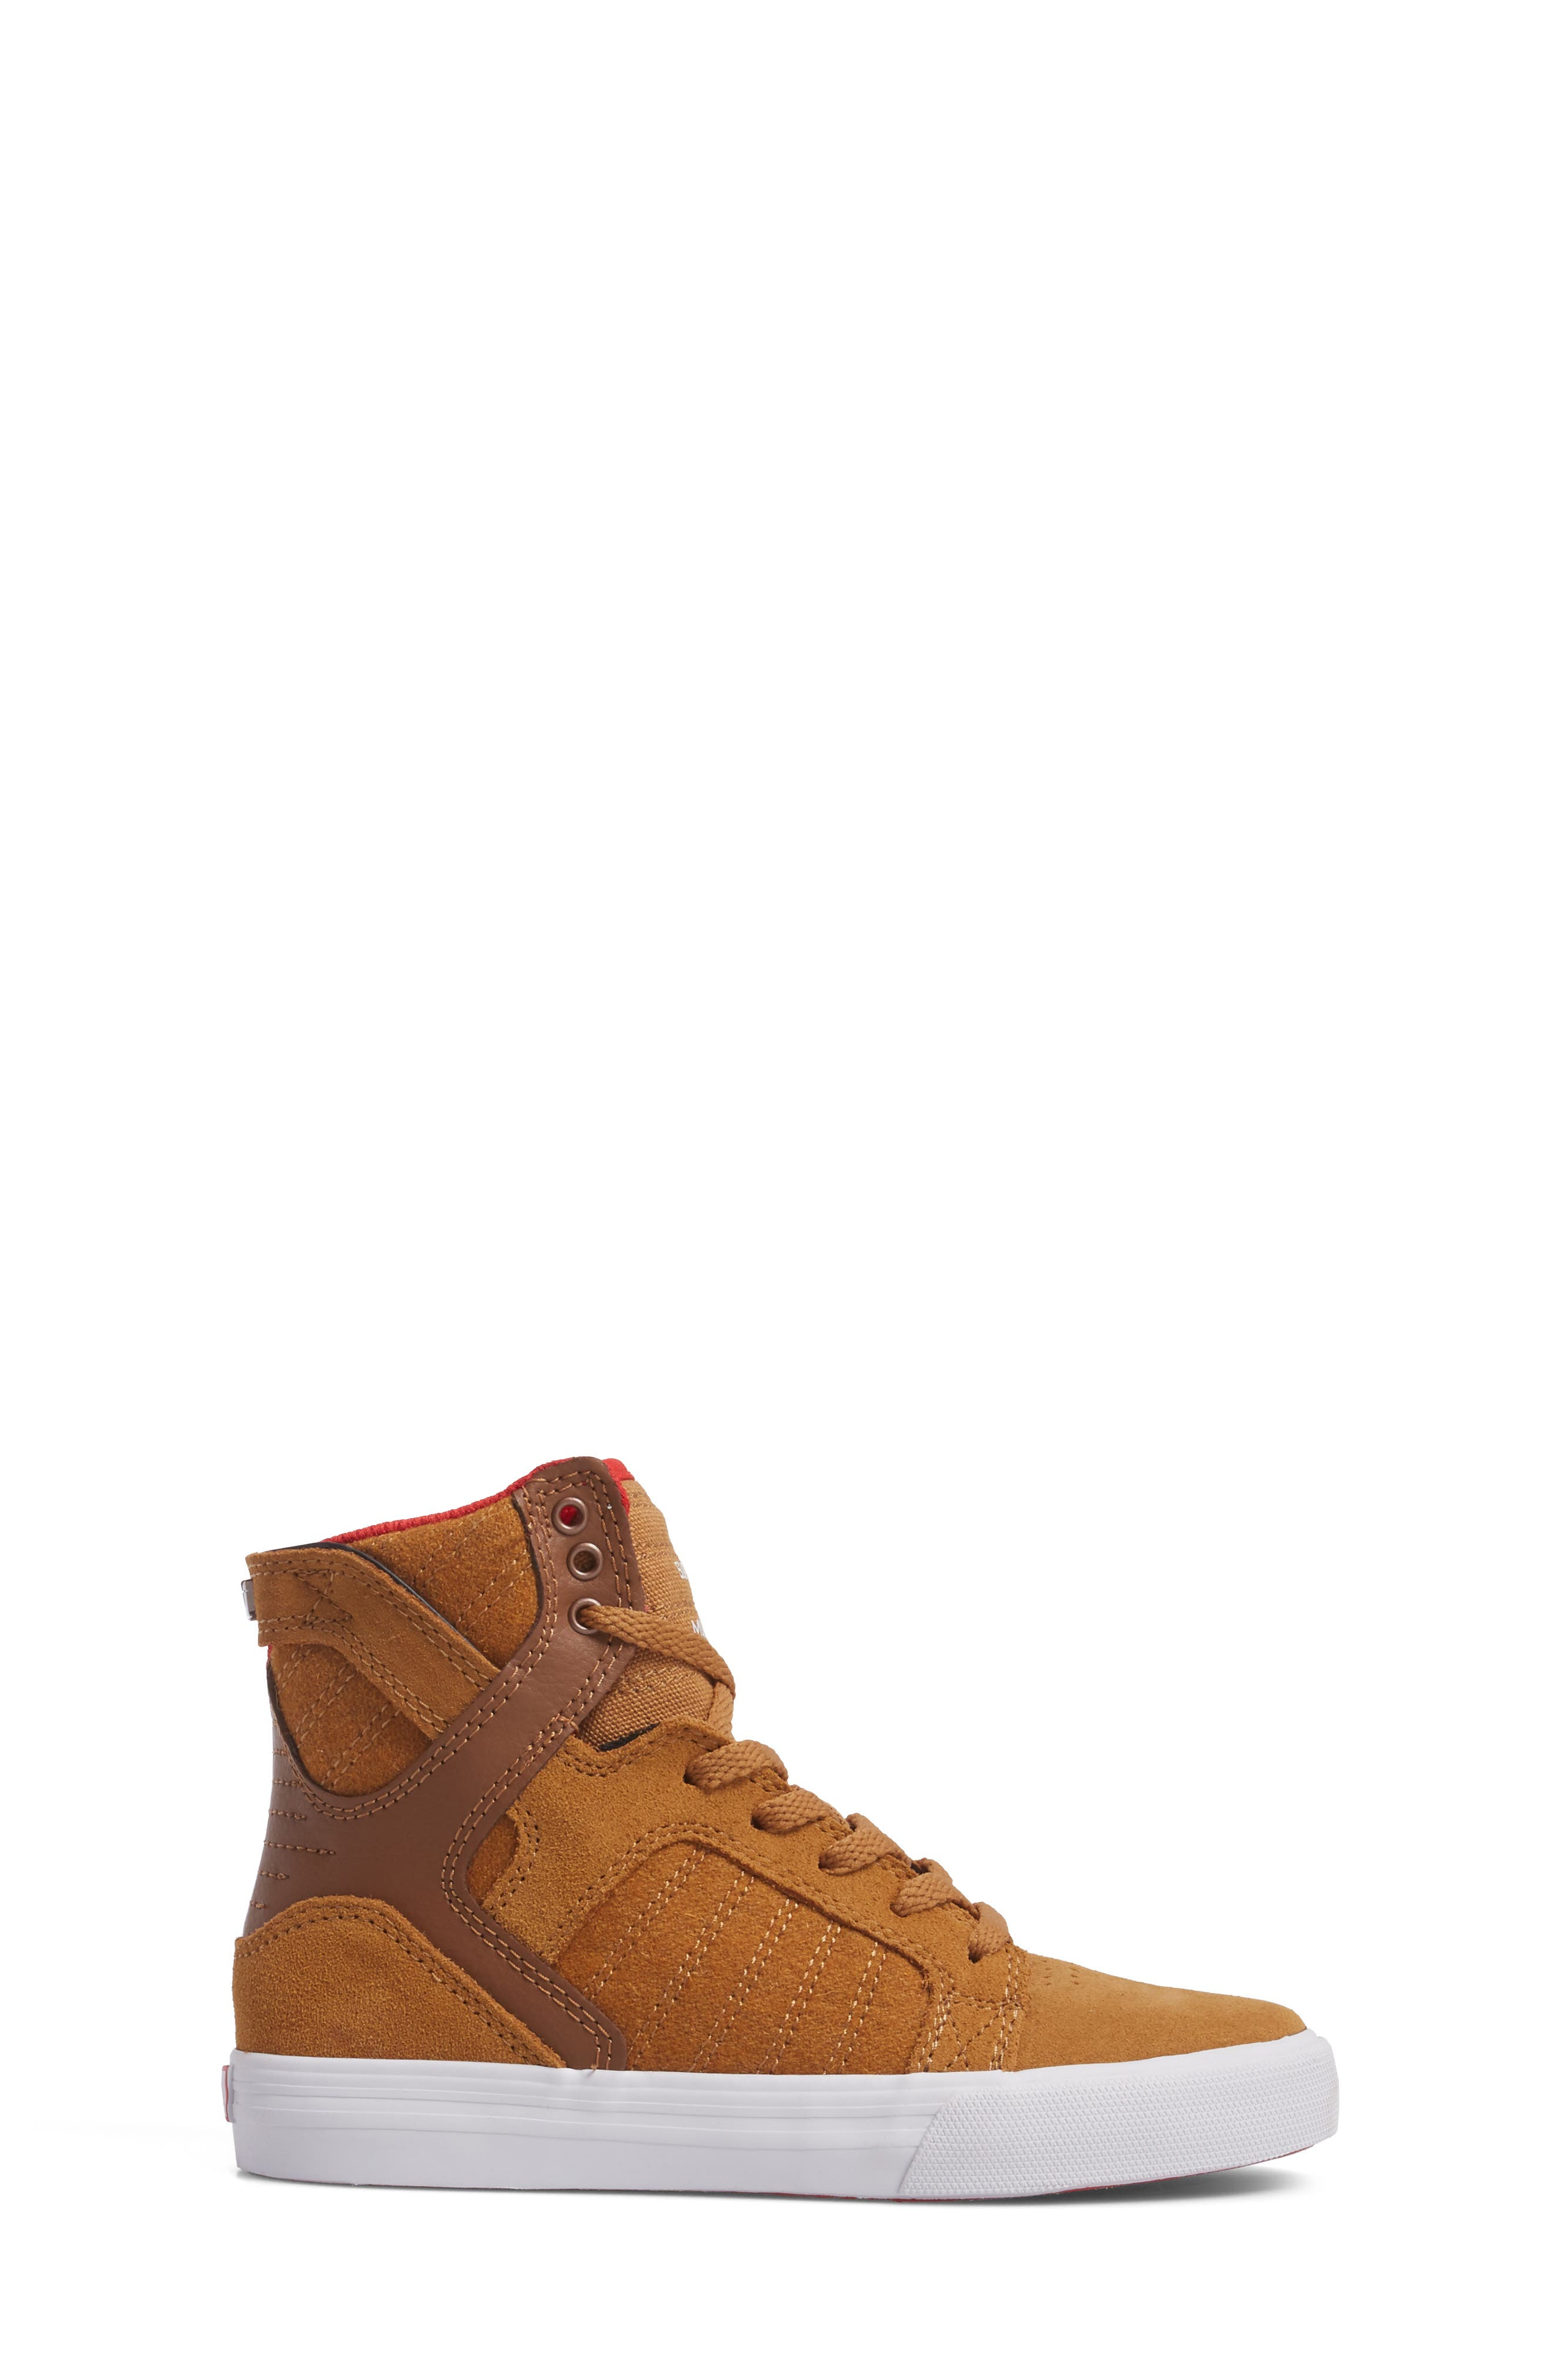 Skytop High Top Sneaker,                             Alternate thumbnail 3, color,                             257